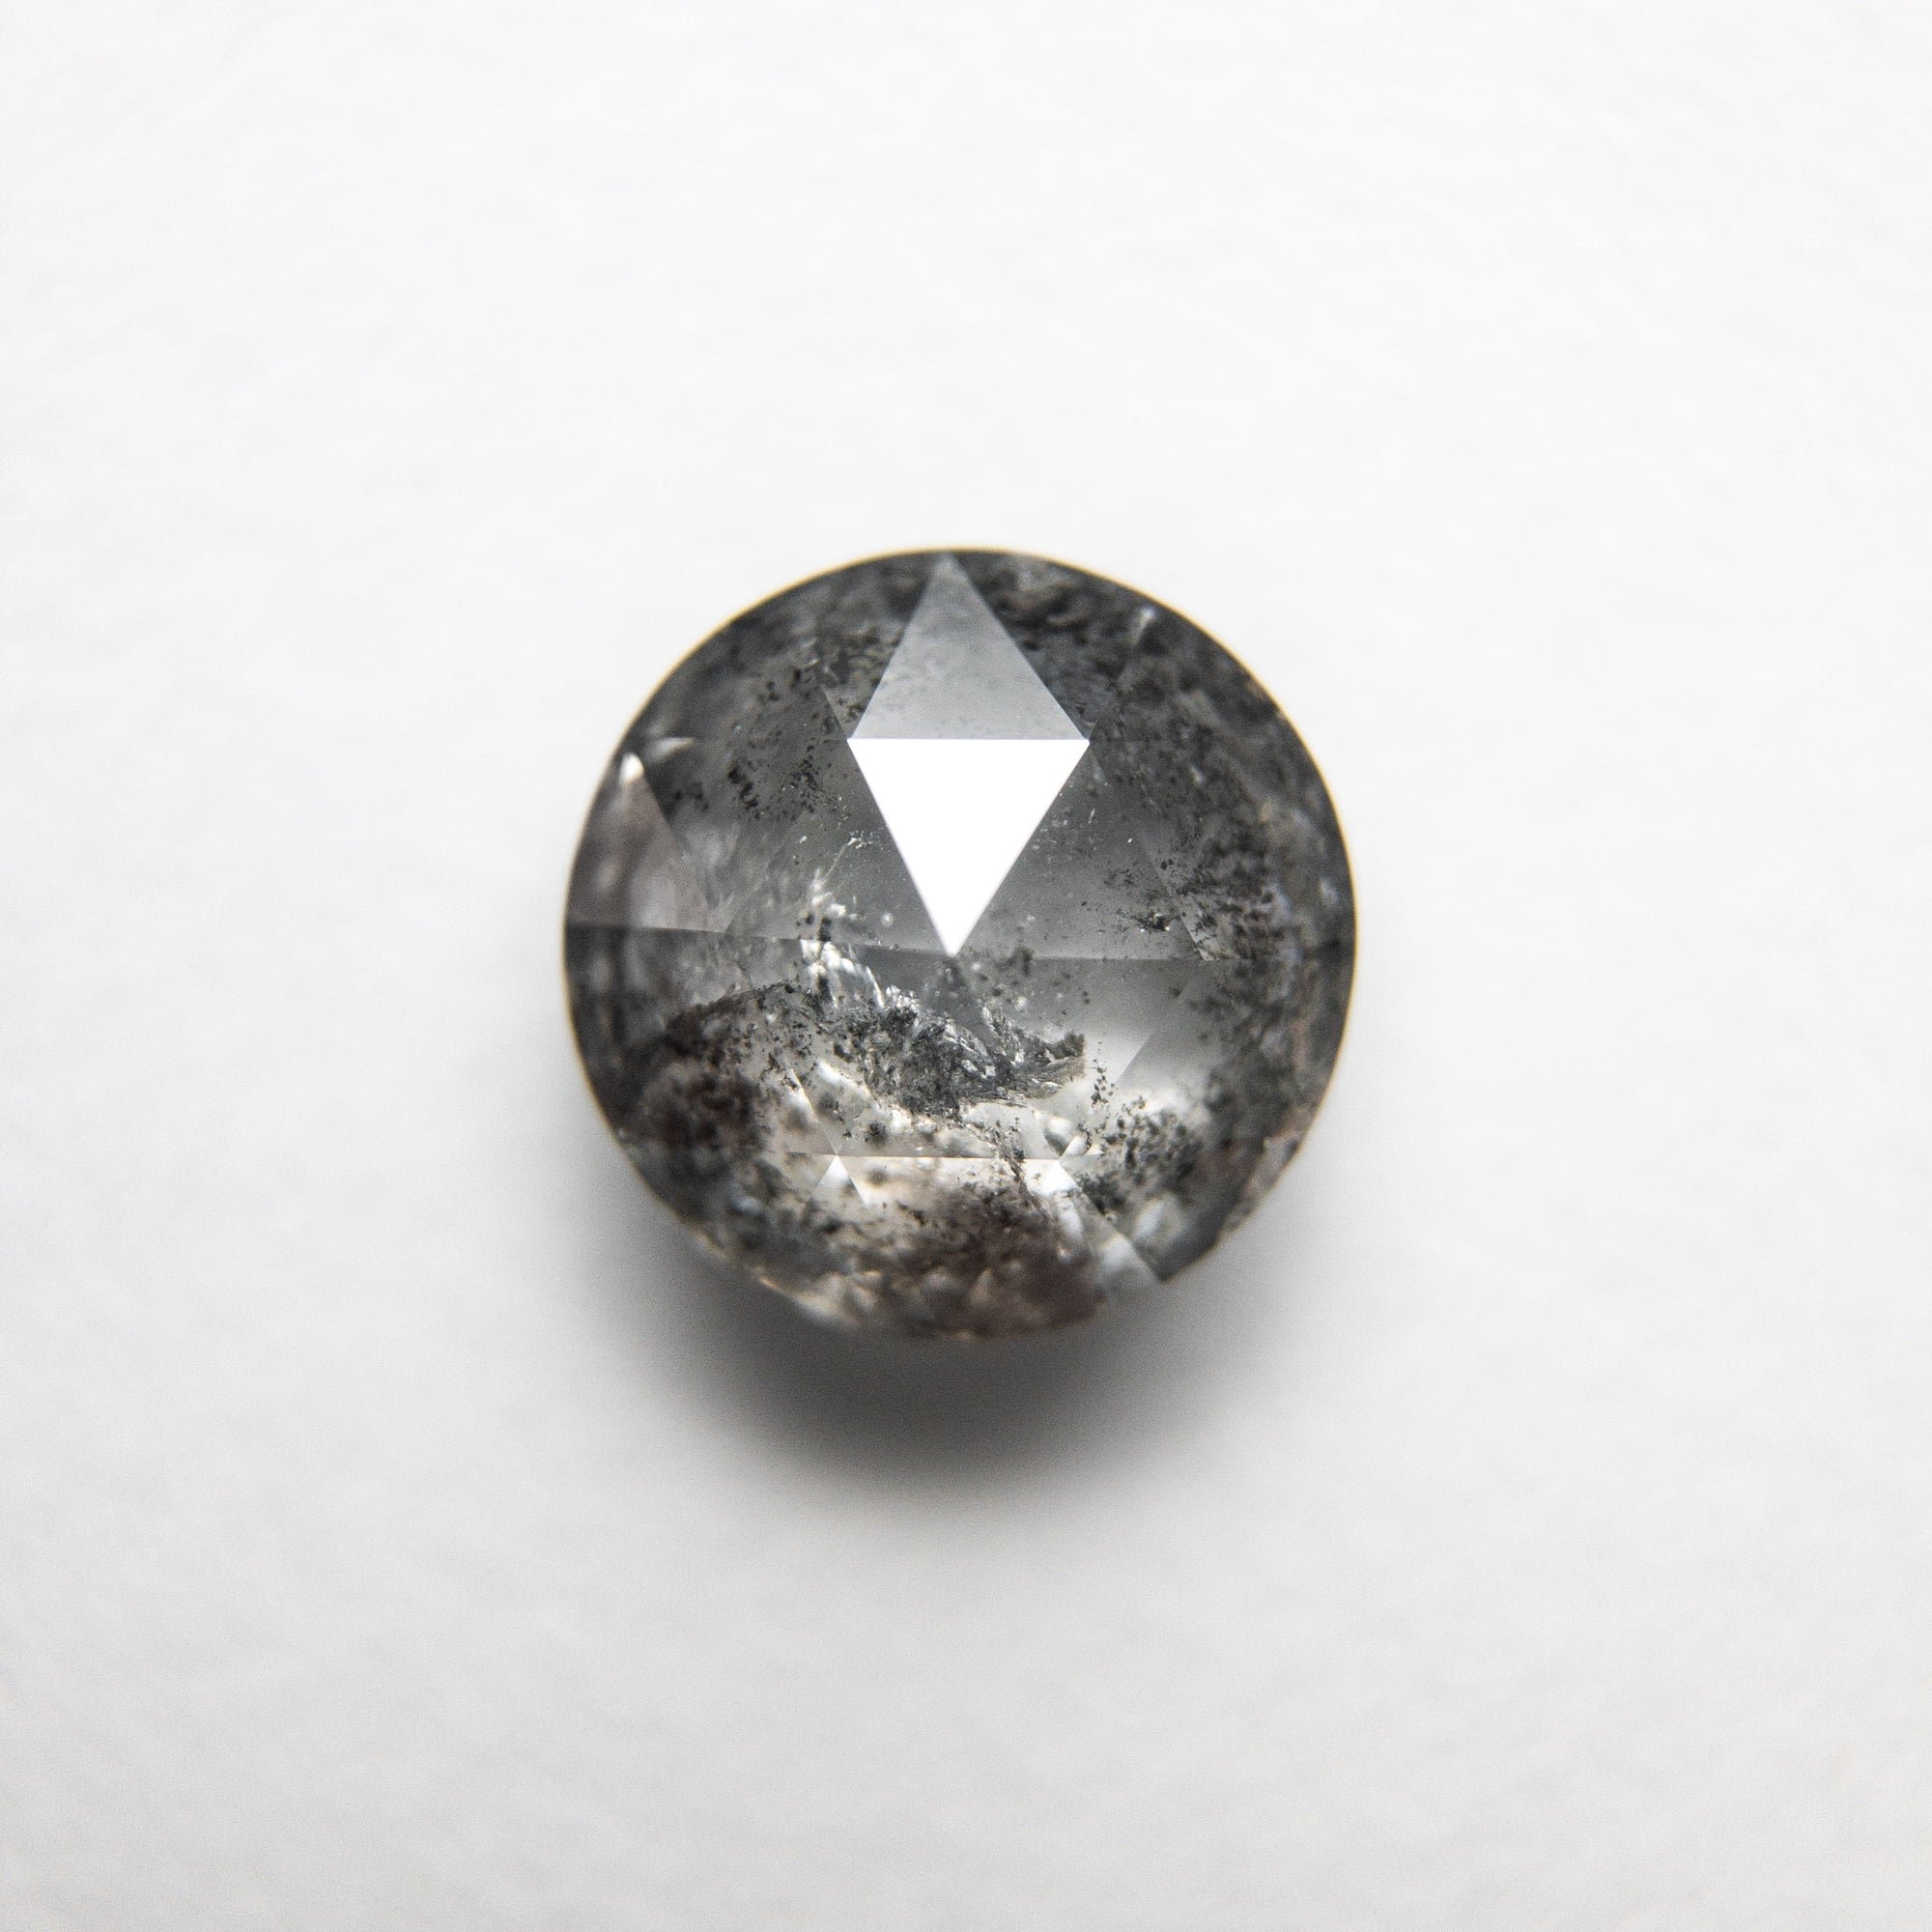 1.29ct 6.78x6.77x3.51mm Round Double Cut 18094-26